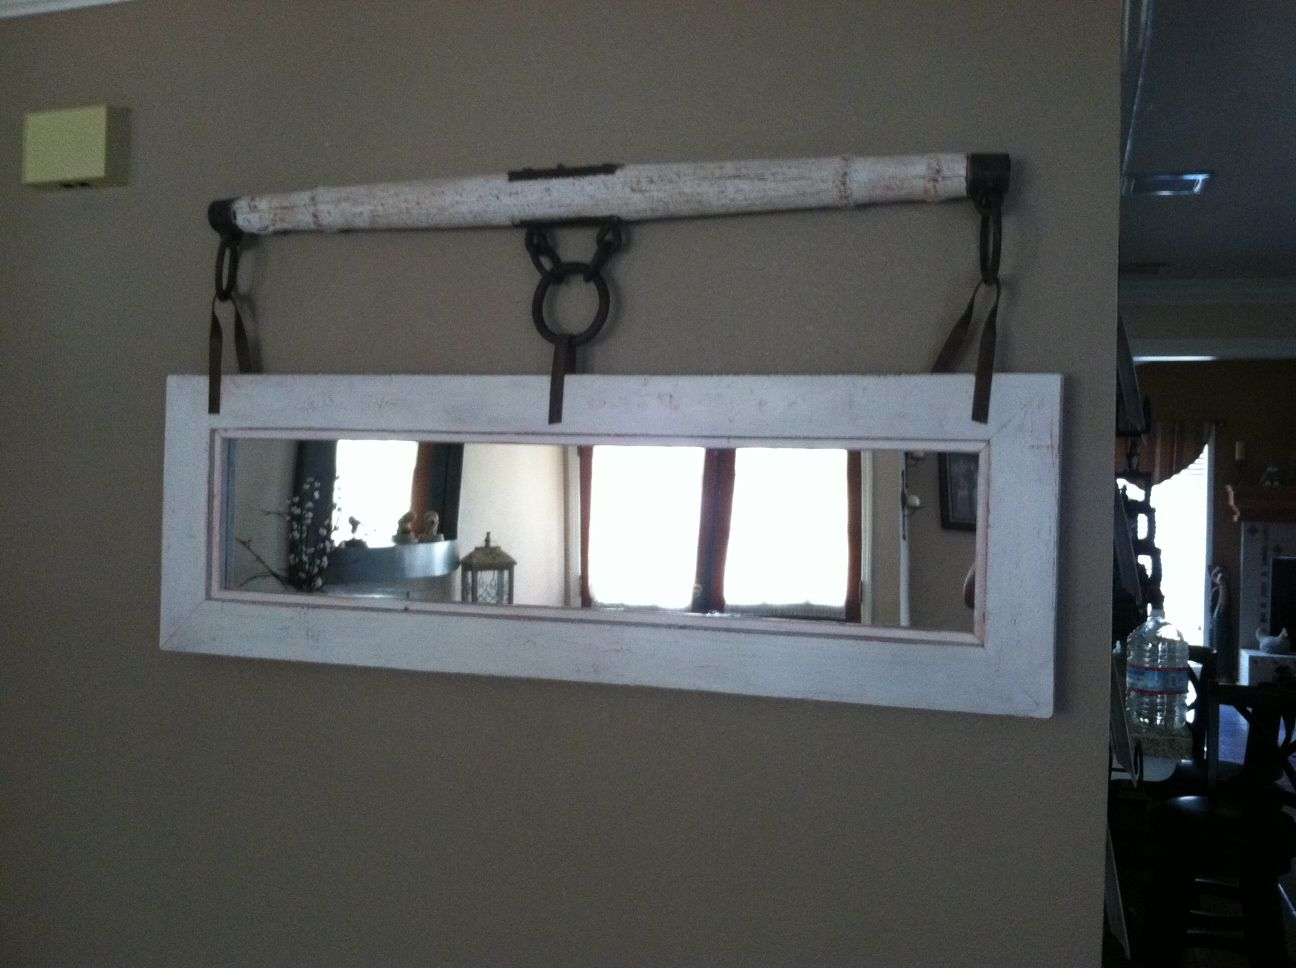 Best 25 mirror hanging ideas on pinterest wall mirrors wall mirror hanging from an old yoke or piece of a wagon not sure amipublicfo Gallery